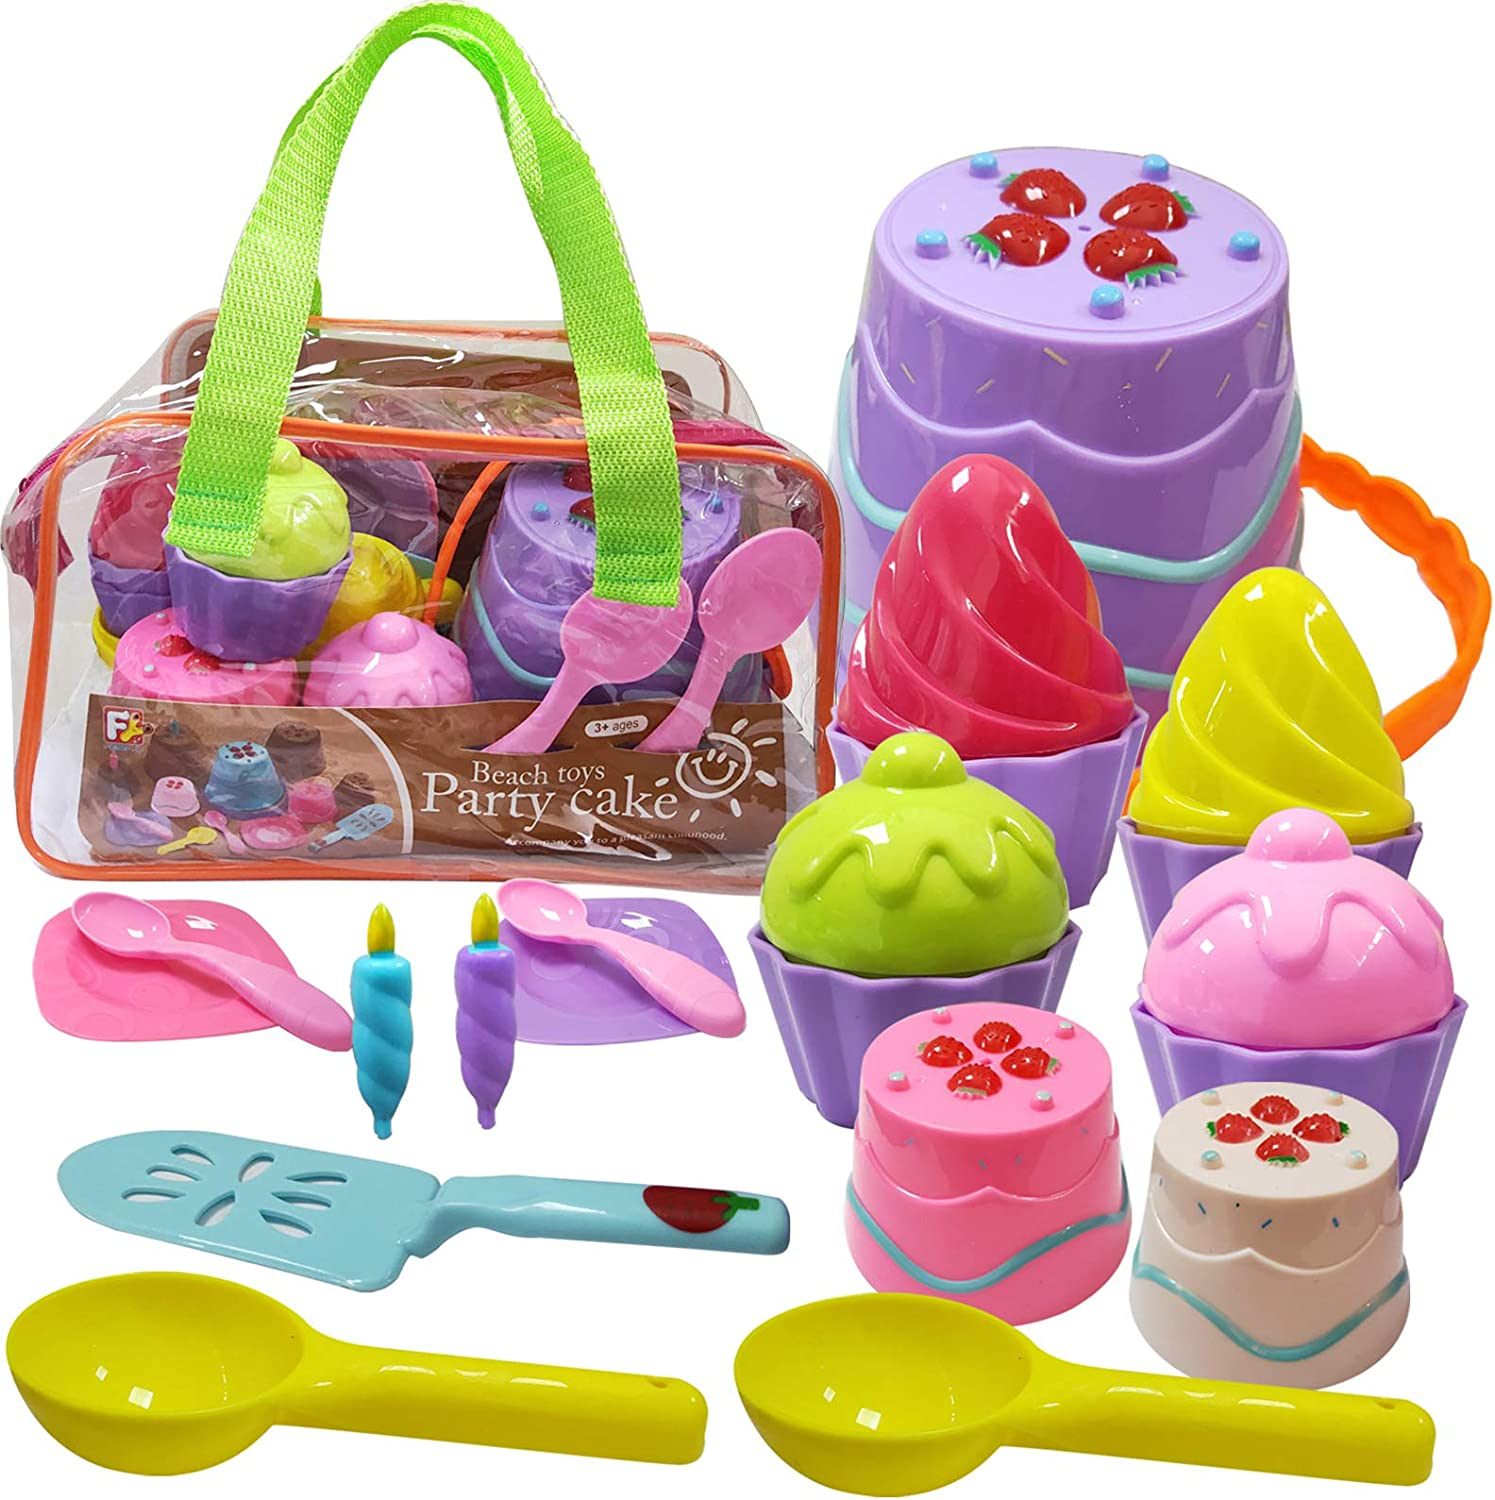 HAOMARK Beach Sand Toys Cakecup Ice Cream Sandbox Mold Set 17 Pieces for Kids Toddlers Girls Boys 3-10 Gift